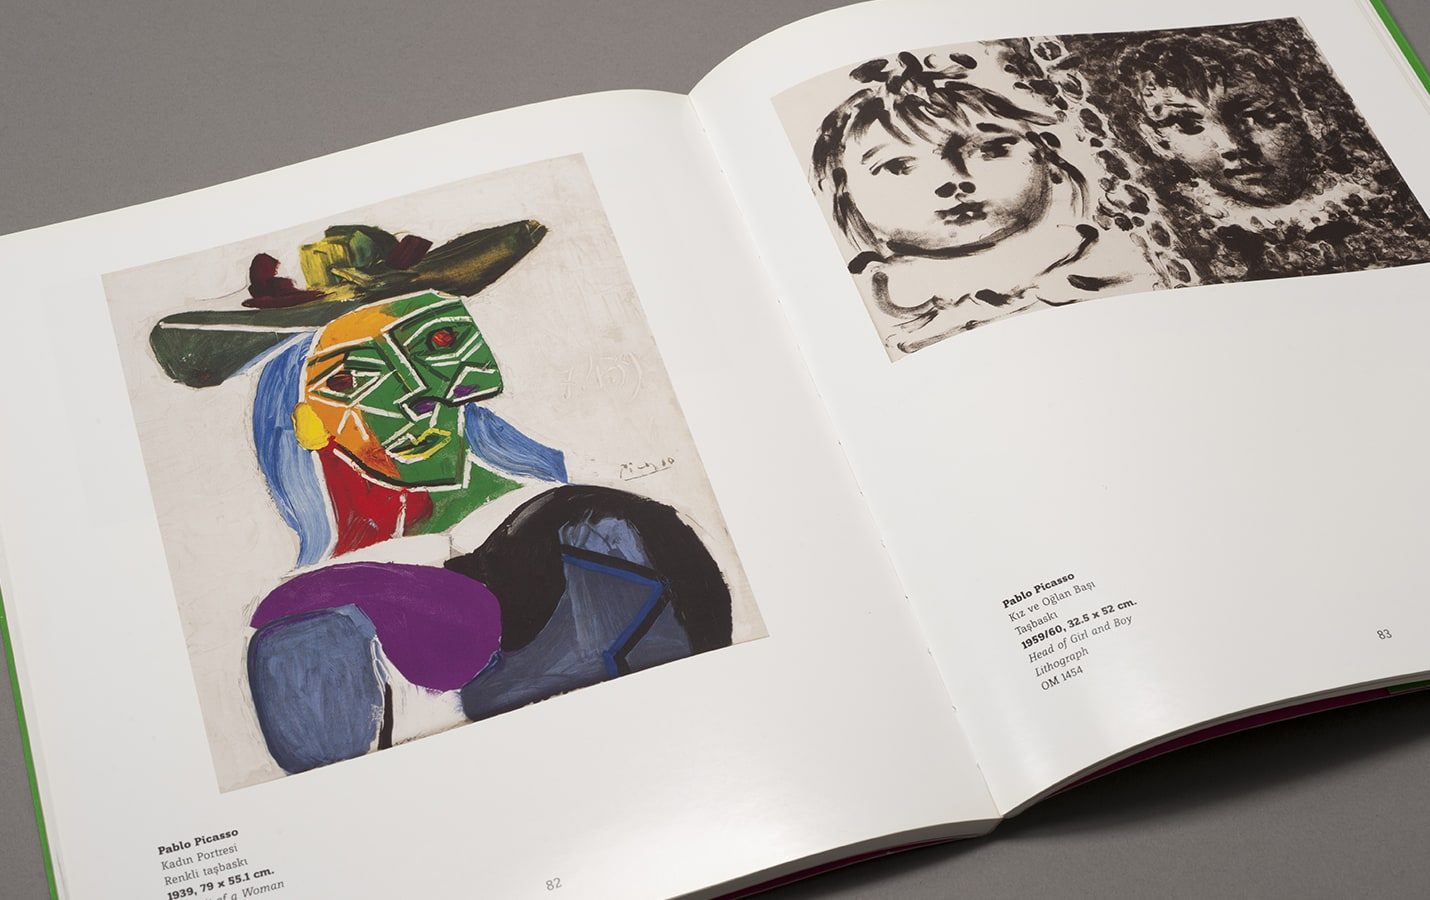 Prints, Drawings, Watercolors by the Masters of the 20th Century